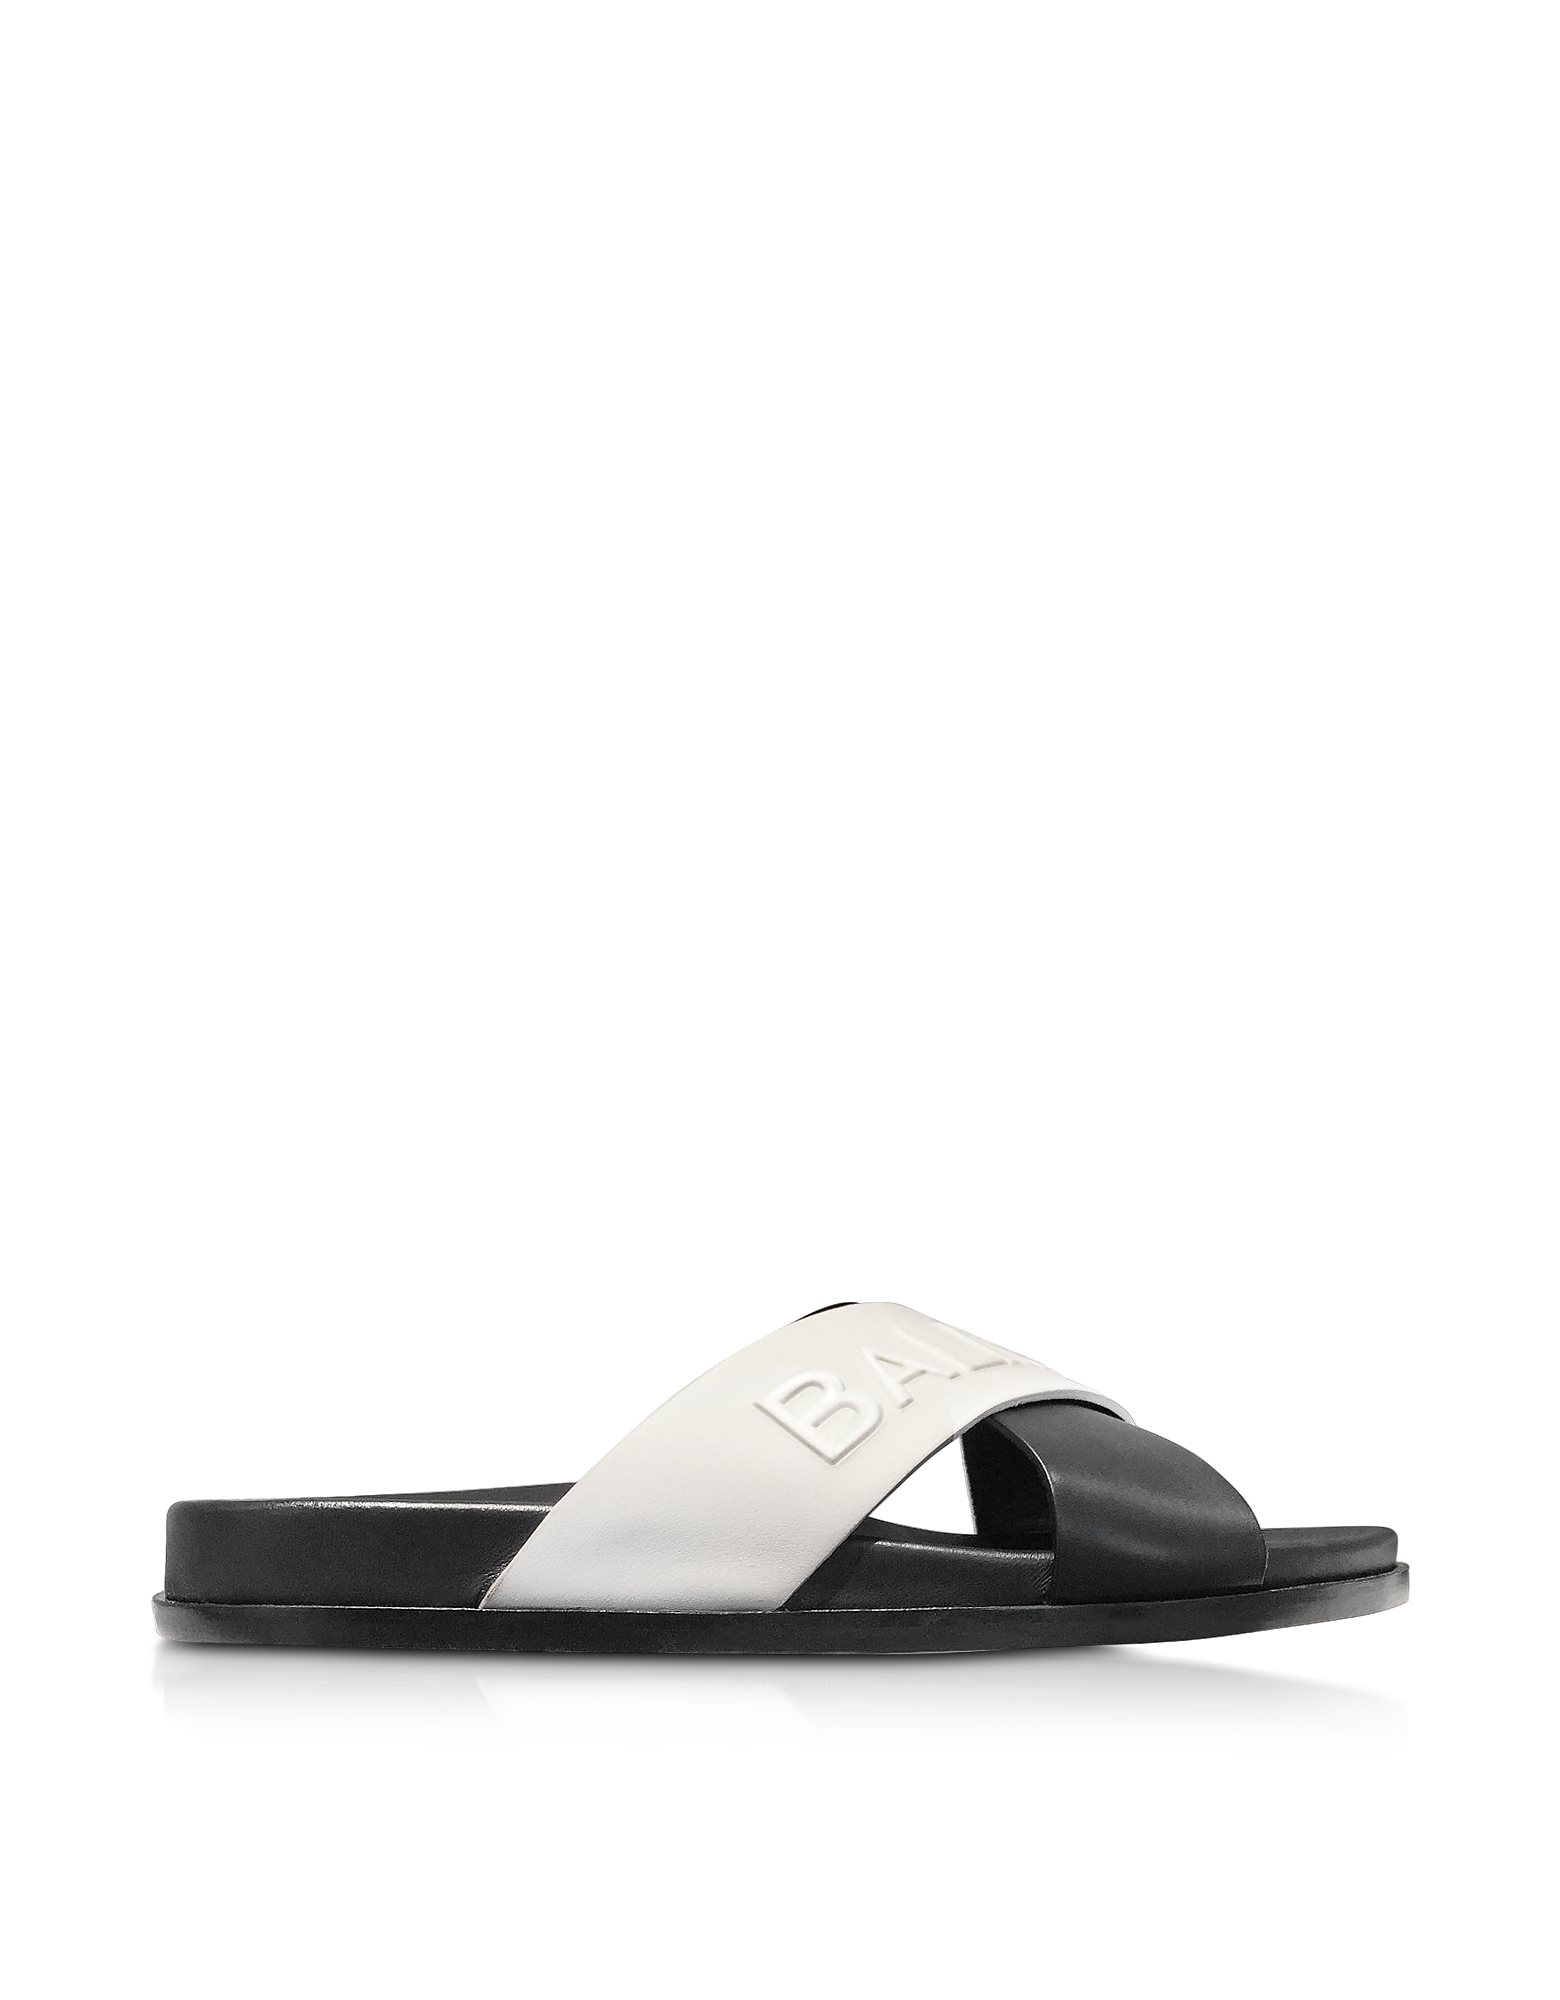 Balmain Shoes, Black & White Leather Criss Cross Women's Slide Sandals